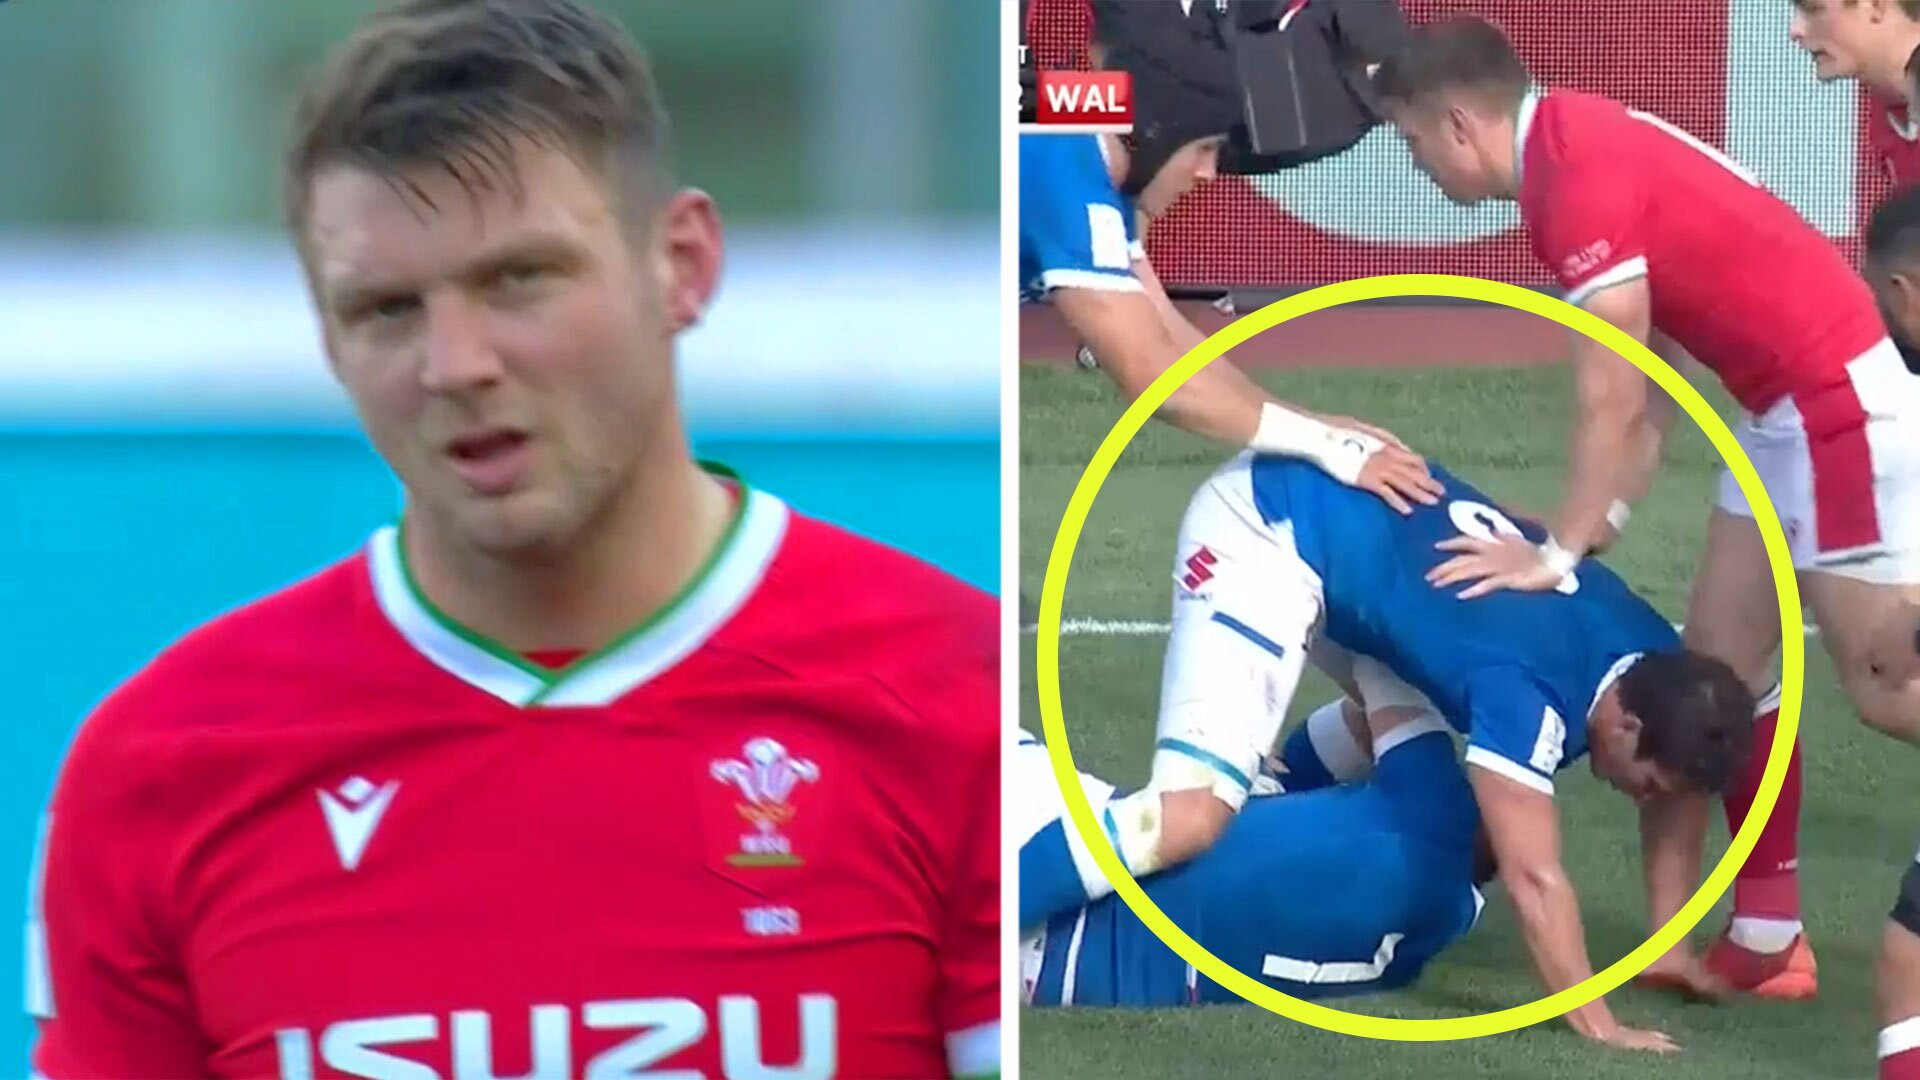 The shocking unseen Dan Biggar moment which nobody is talking about